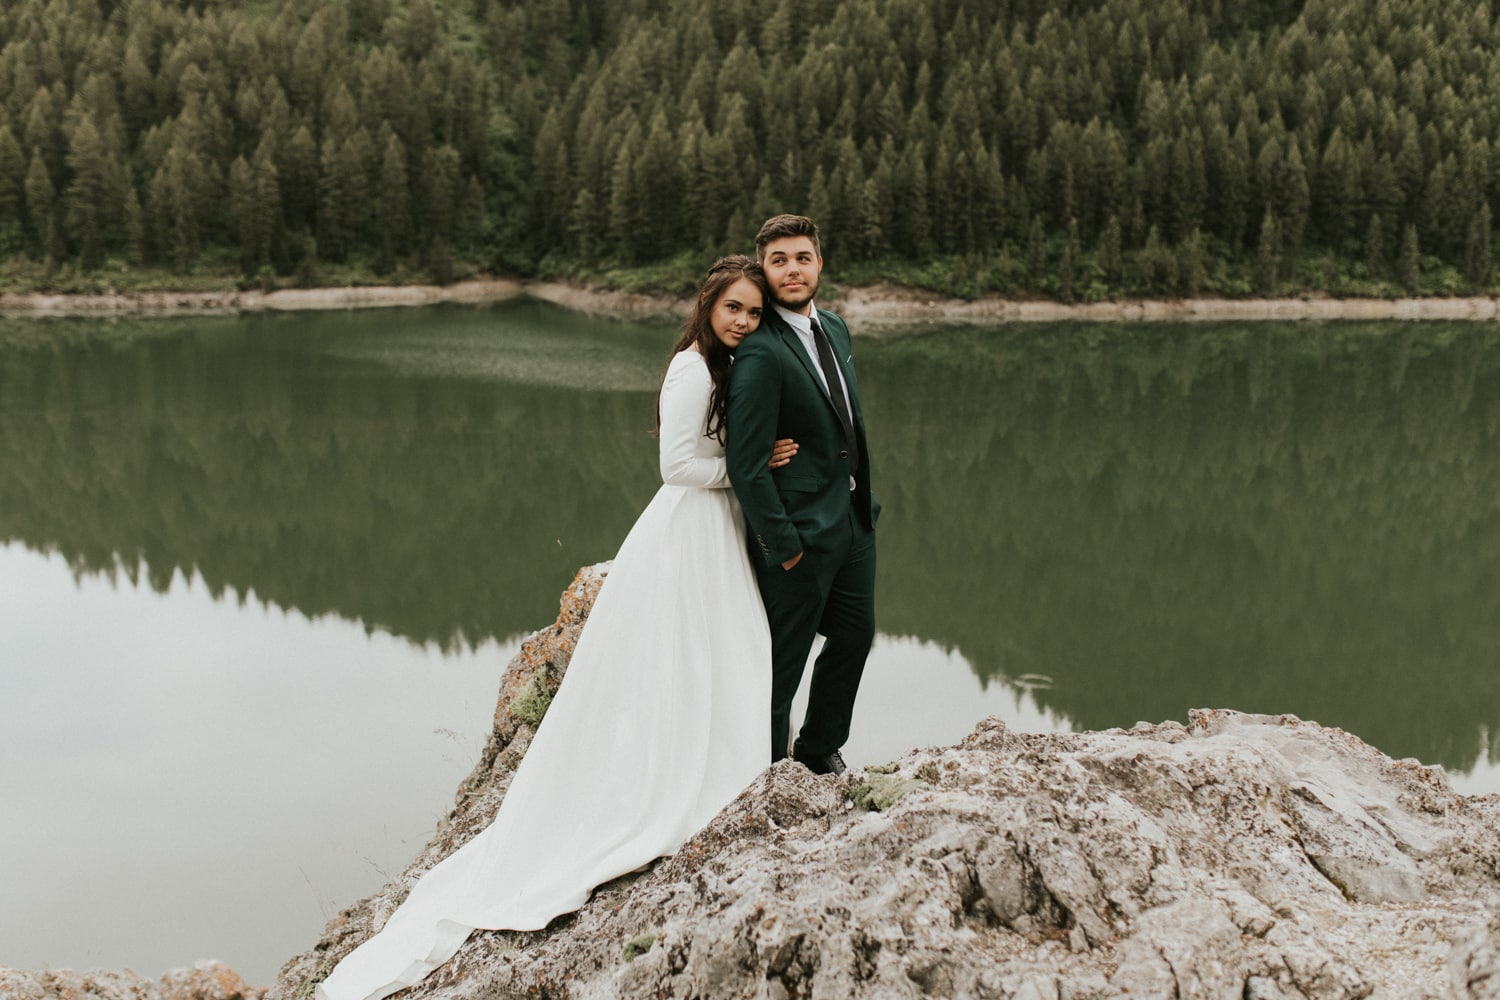 A bride and groom hugging and getting married in the mountains of California.